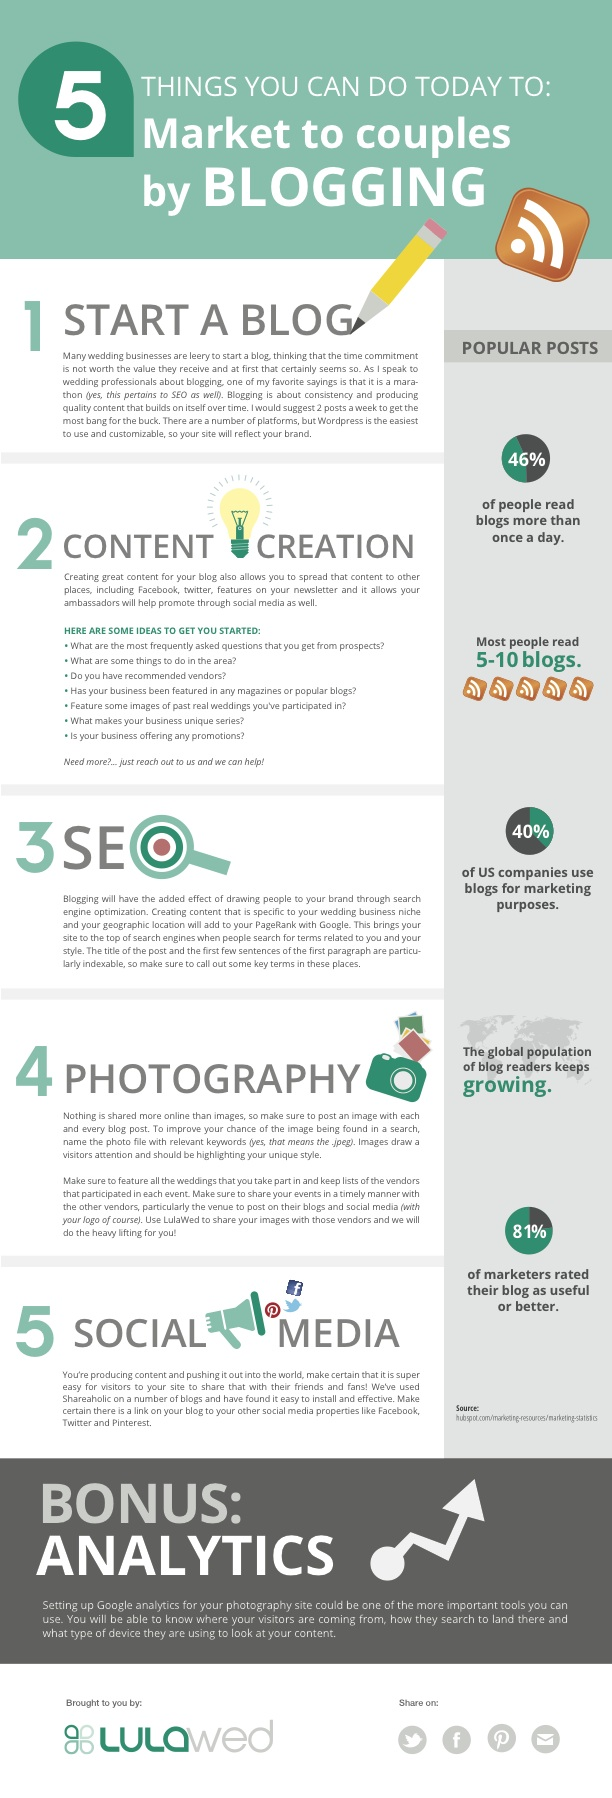 marketing-wedding-photography-business-infographic